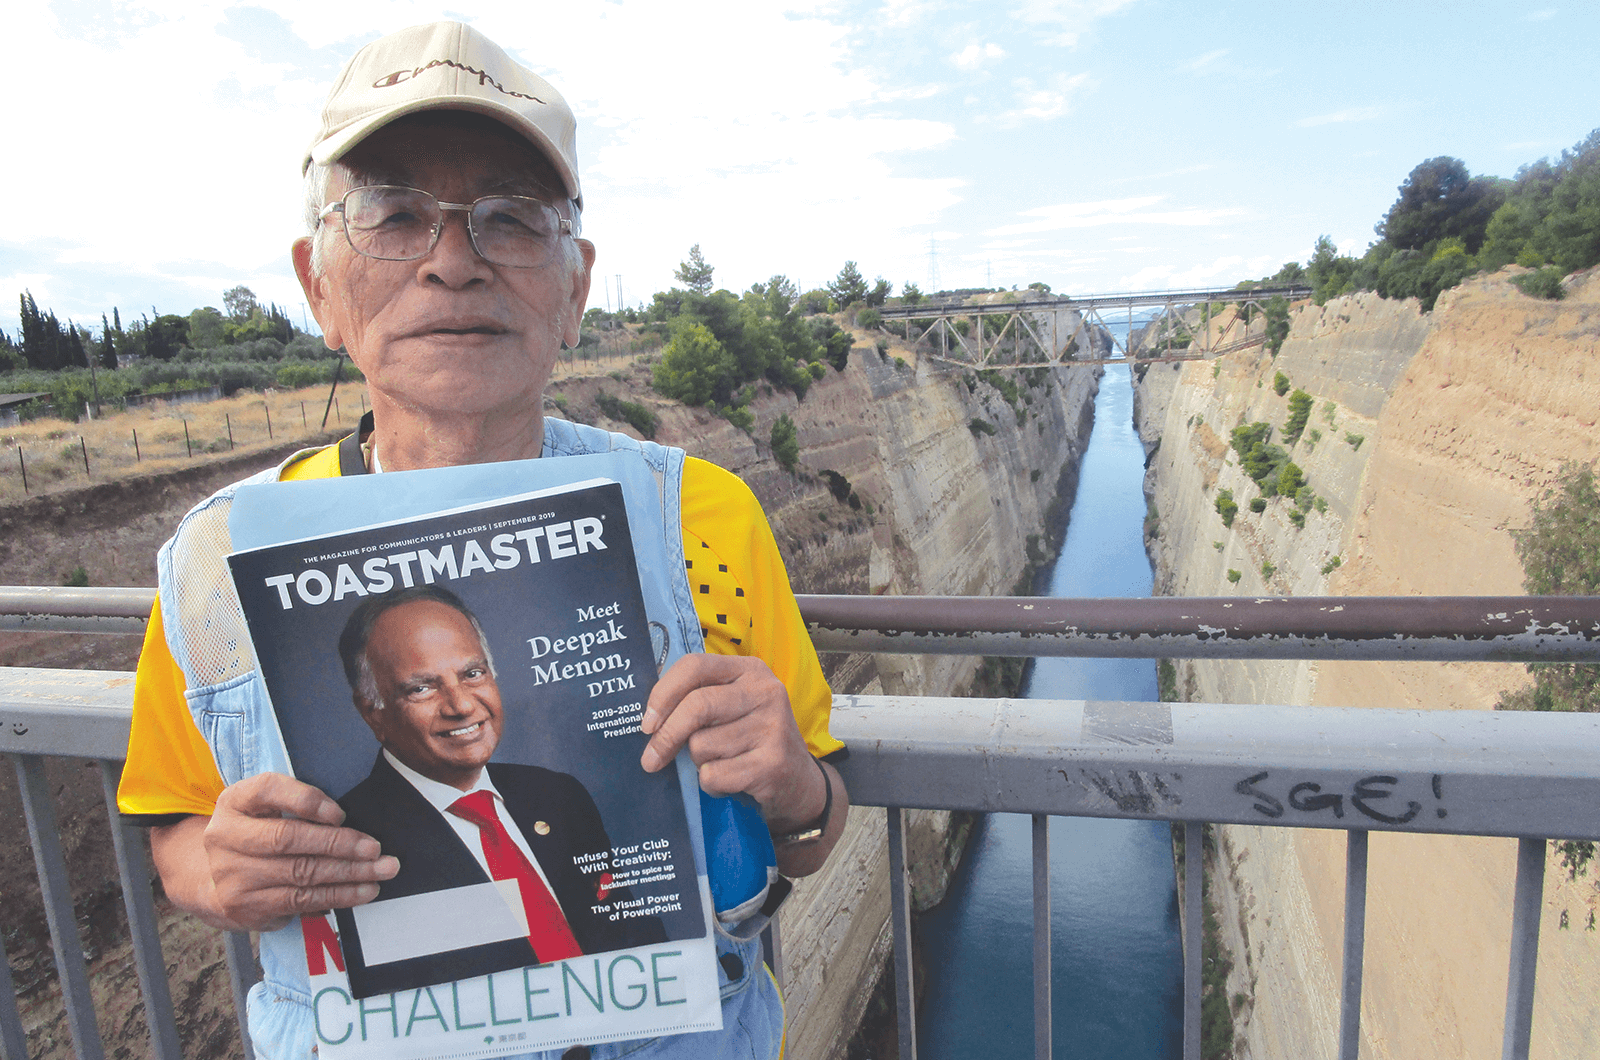 Masatoshi Denko of Tokyo, Japan, stands on a bridge above the Corinth Canal in Greece. The canal connects the Gulf of Corinth with the Saronic Gulf in the Aegean Sea.